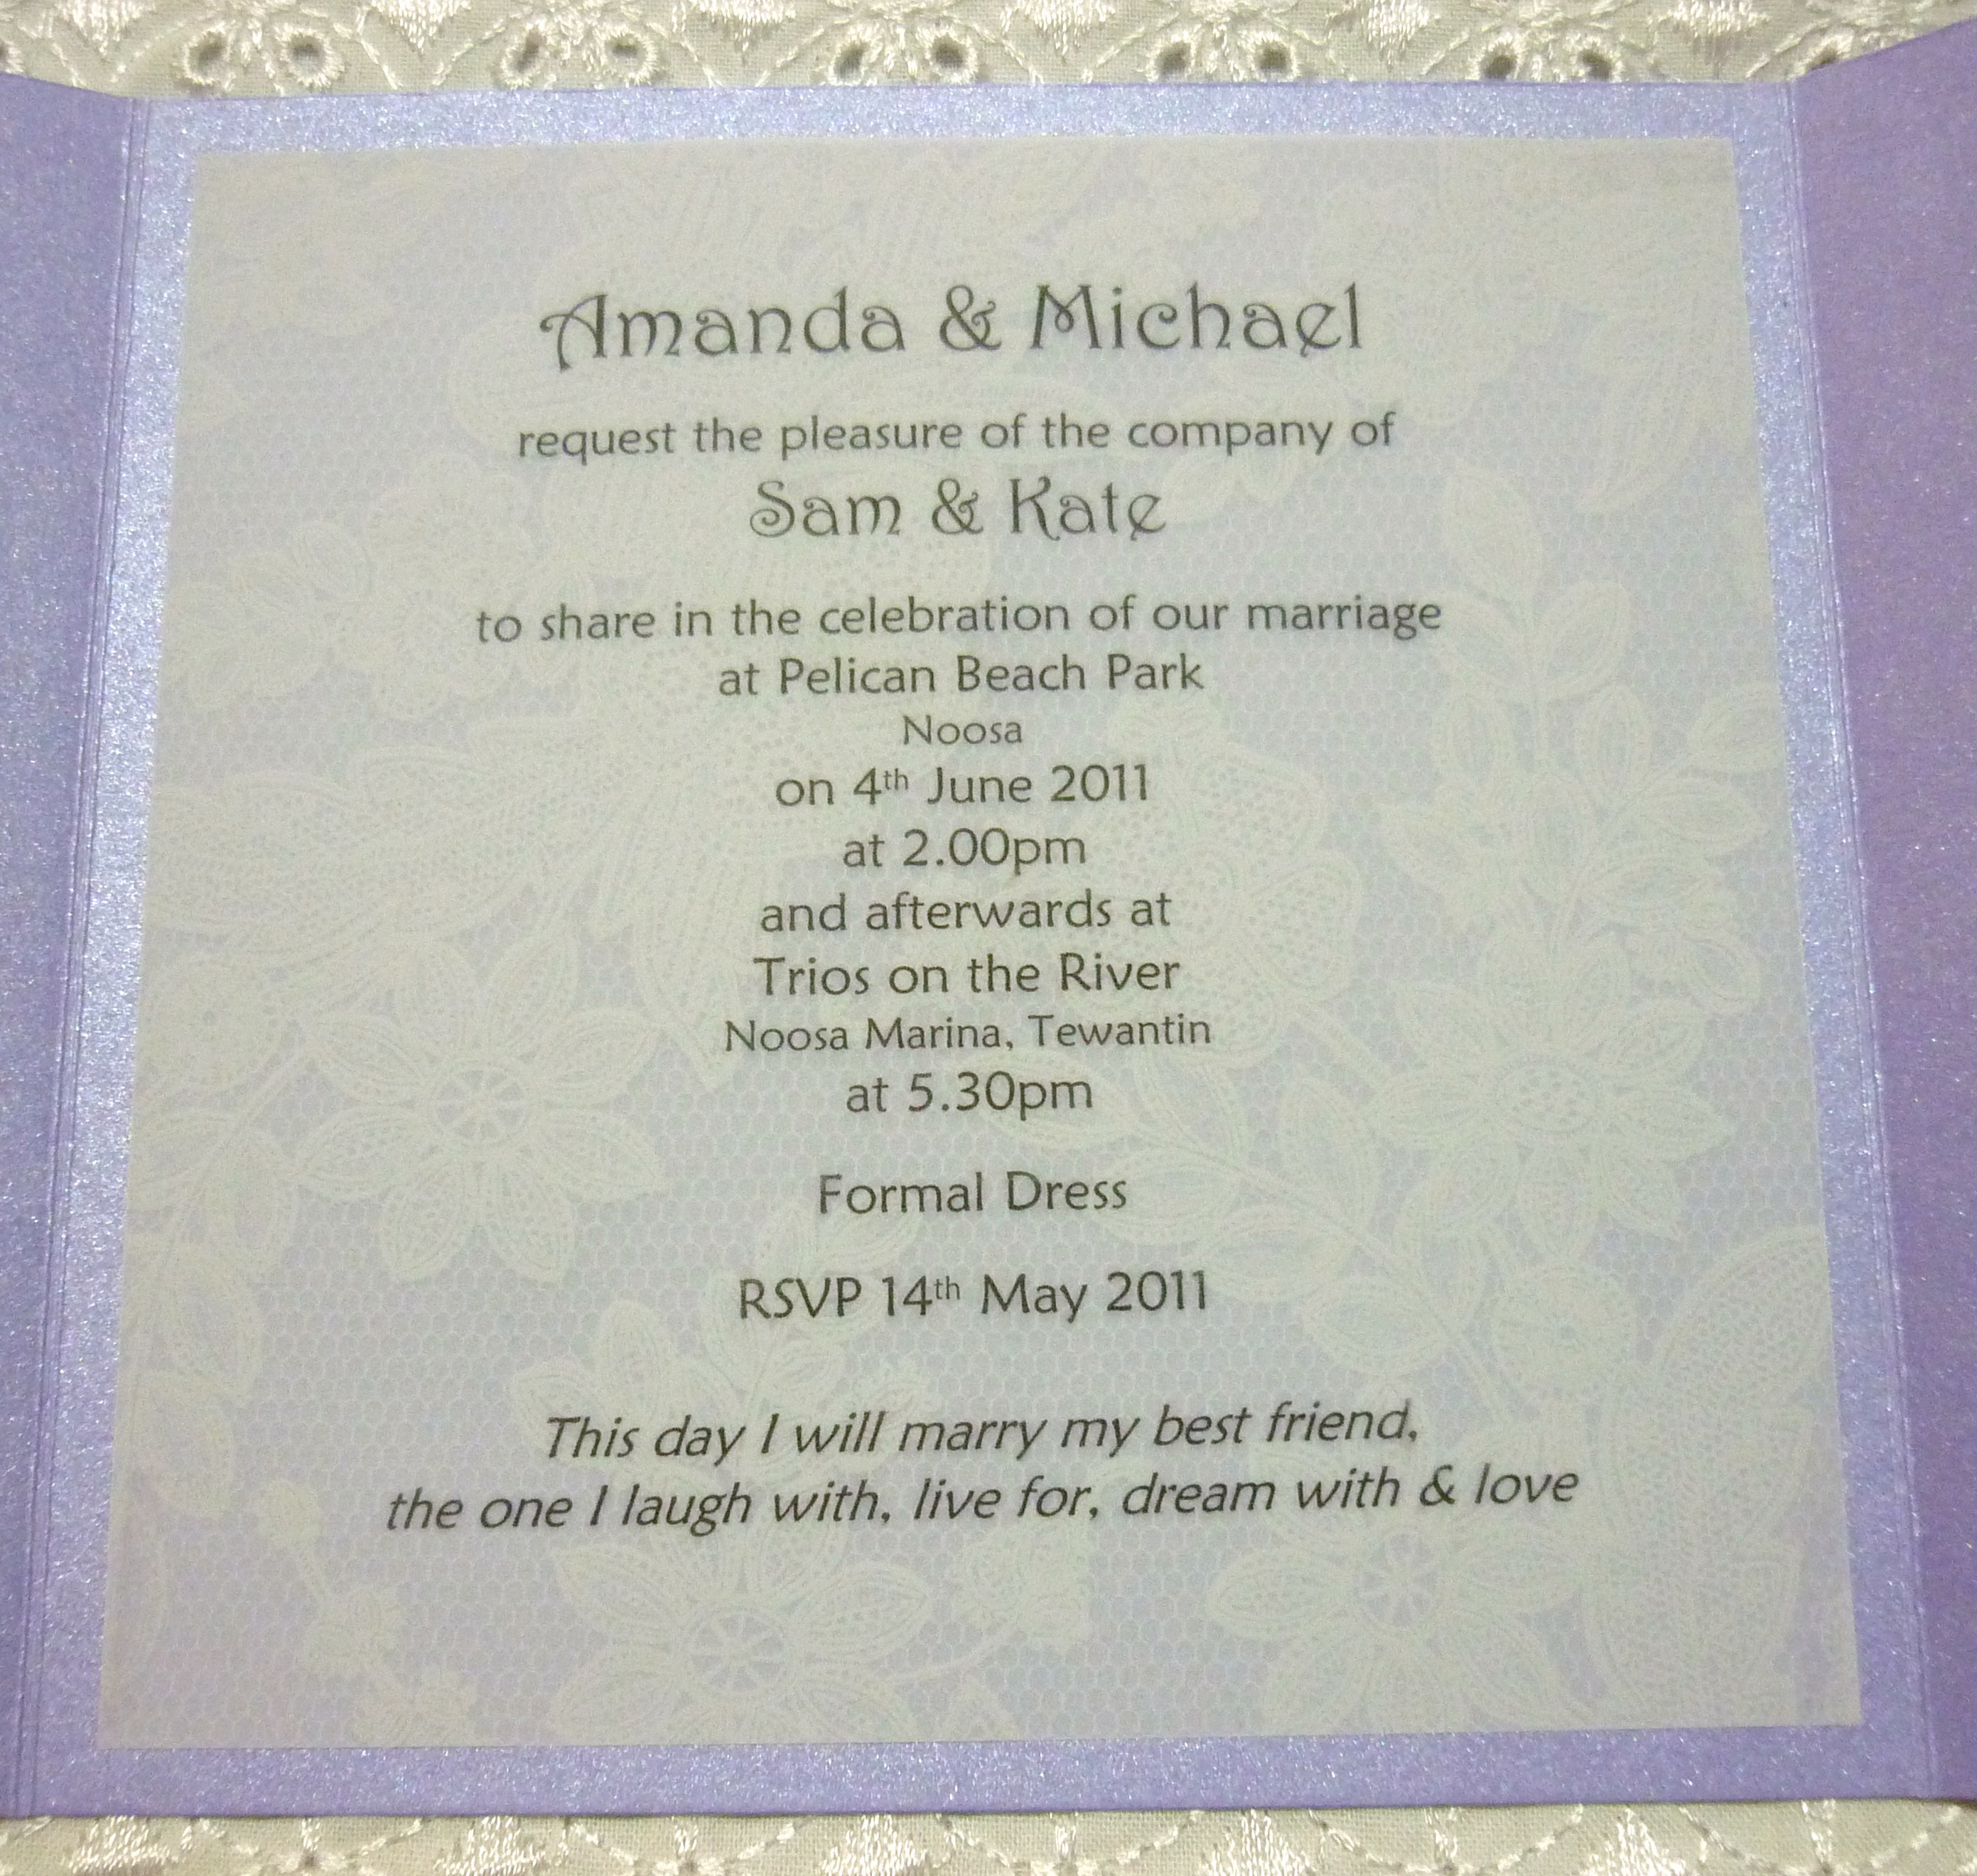 Quotes about Marriage for wedding invitations (16 quotes)